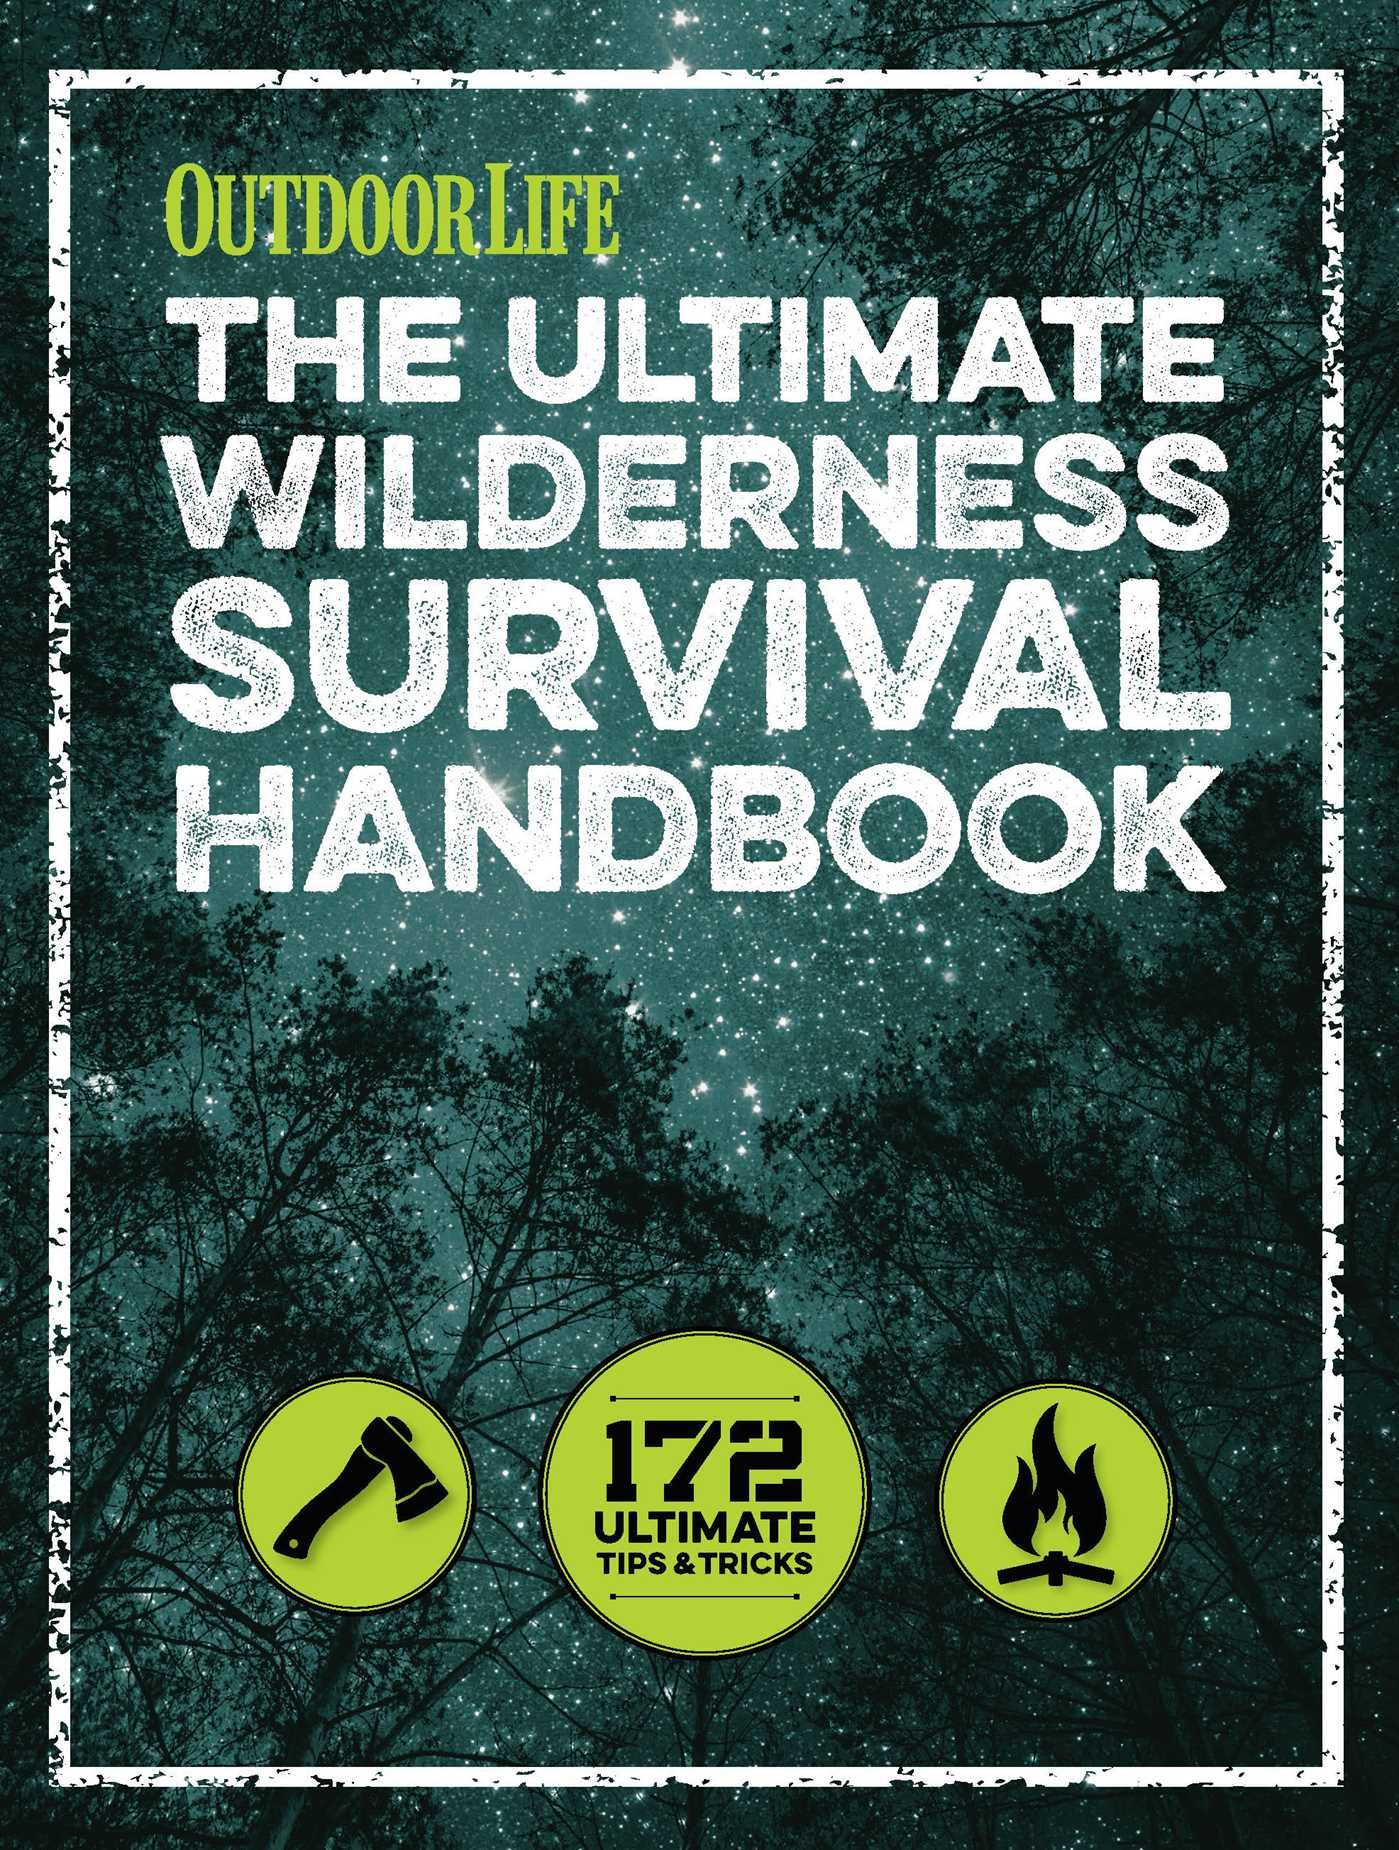 The ultimate wilderness survival handbook 9781681881515 hr